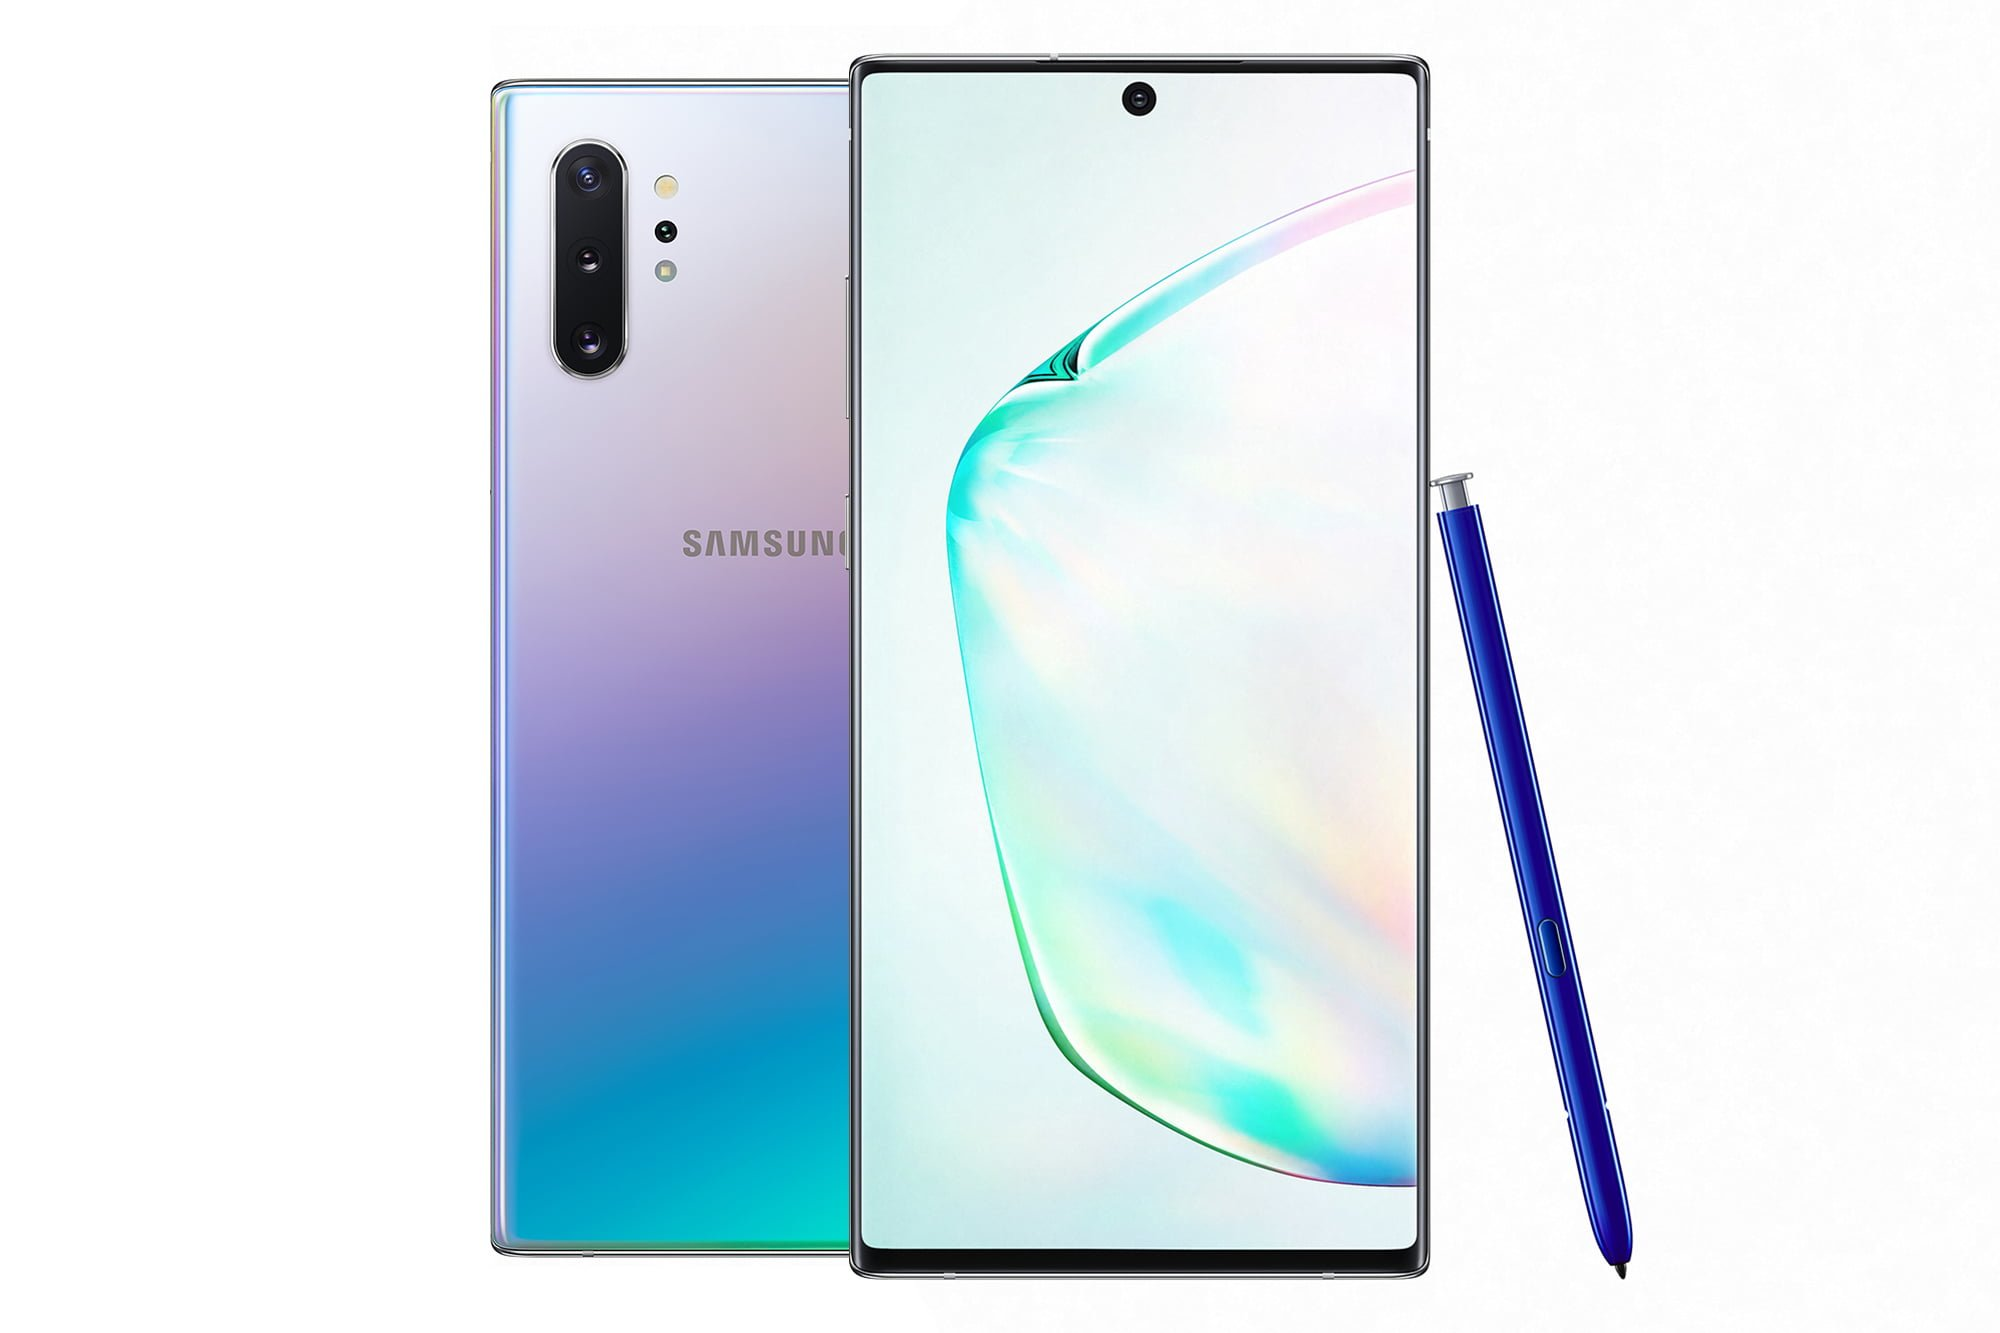 Presentato Il Nuovo Samsung Galaxy Note 10! S Pen Intelligente, Fotocamera Professionale 4 - Hynerd.it